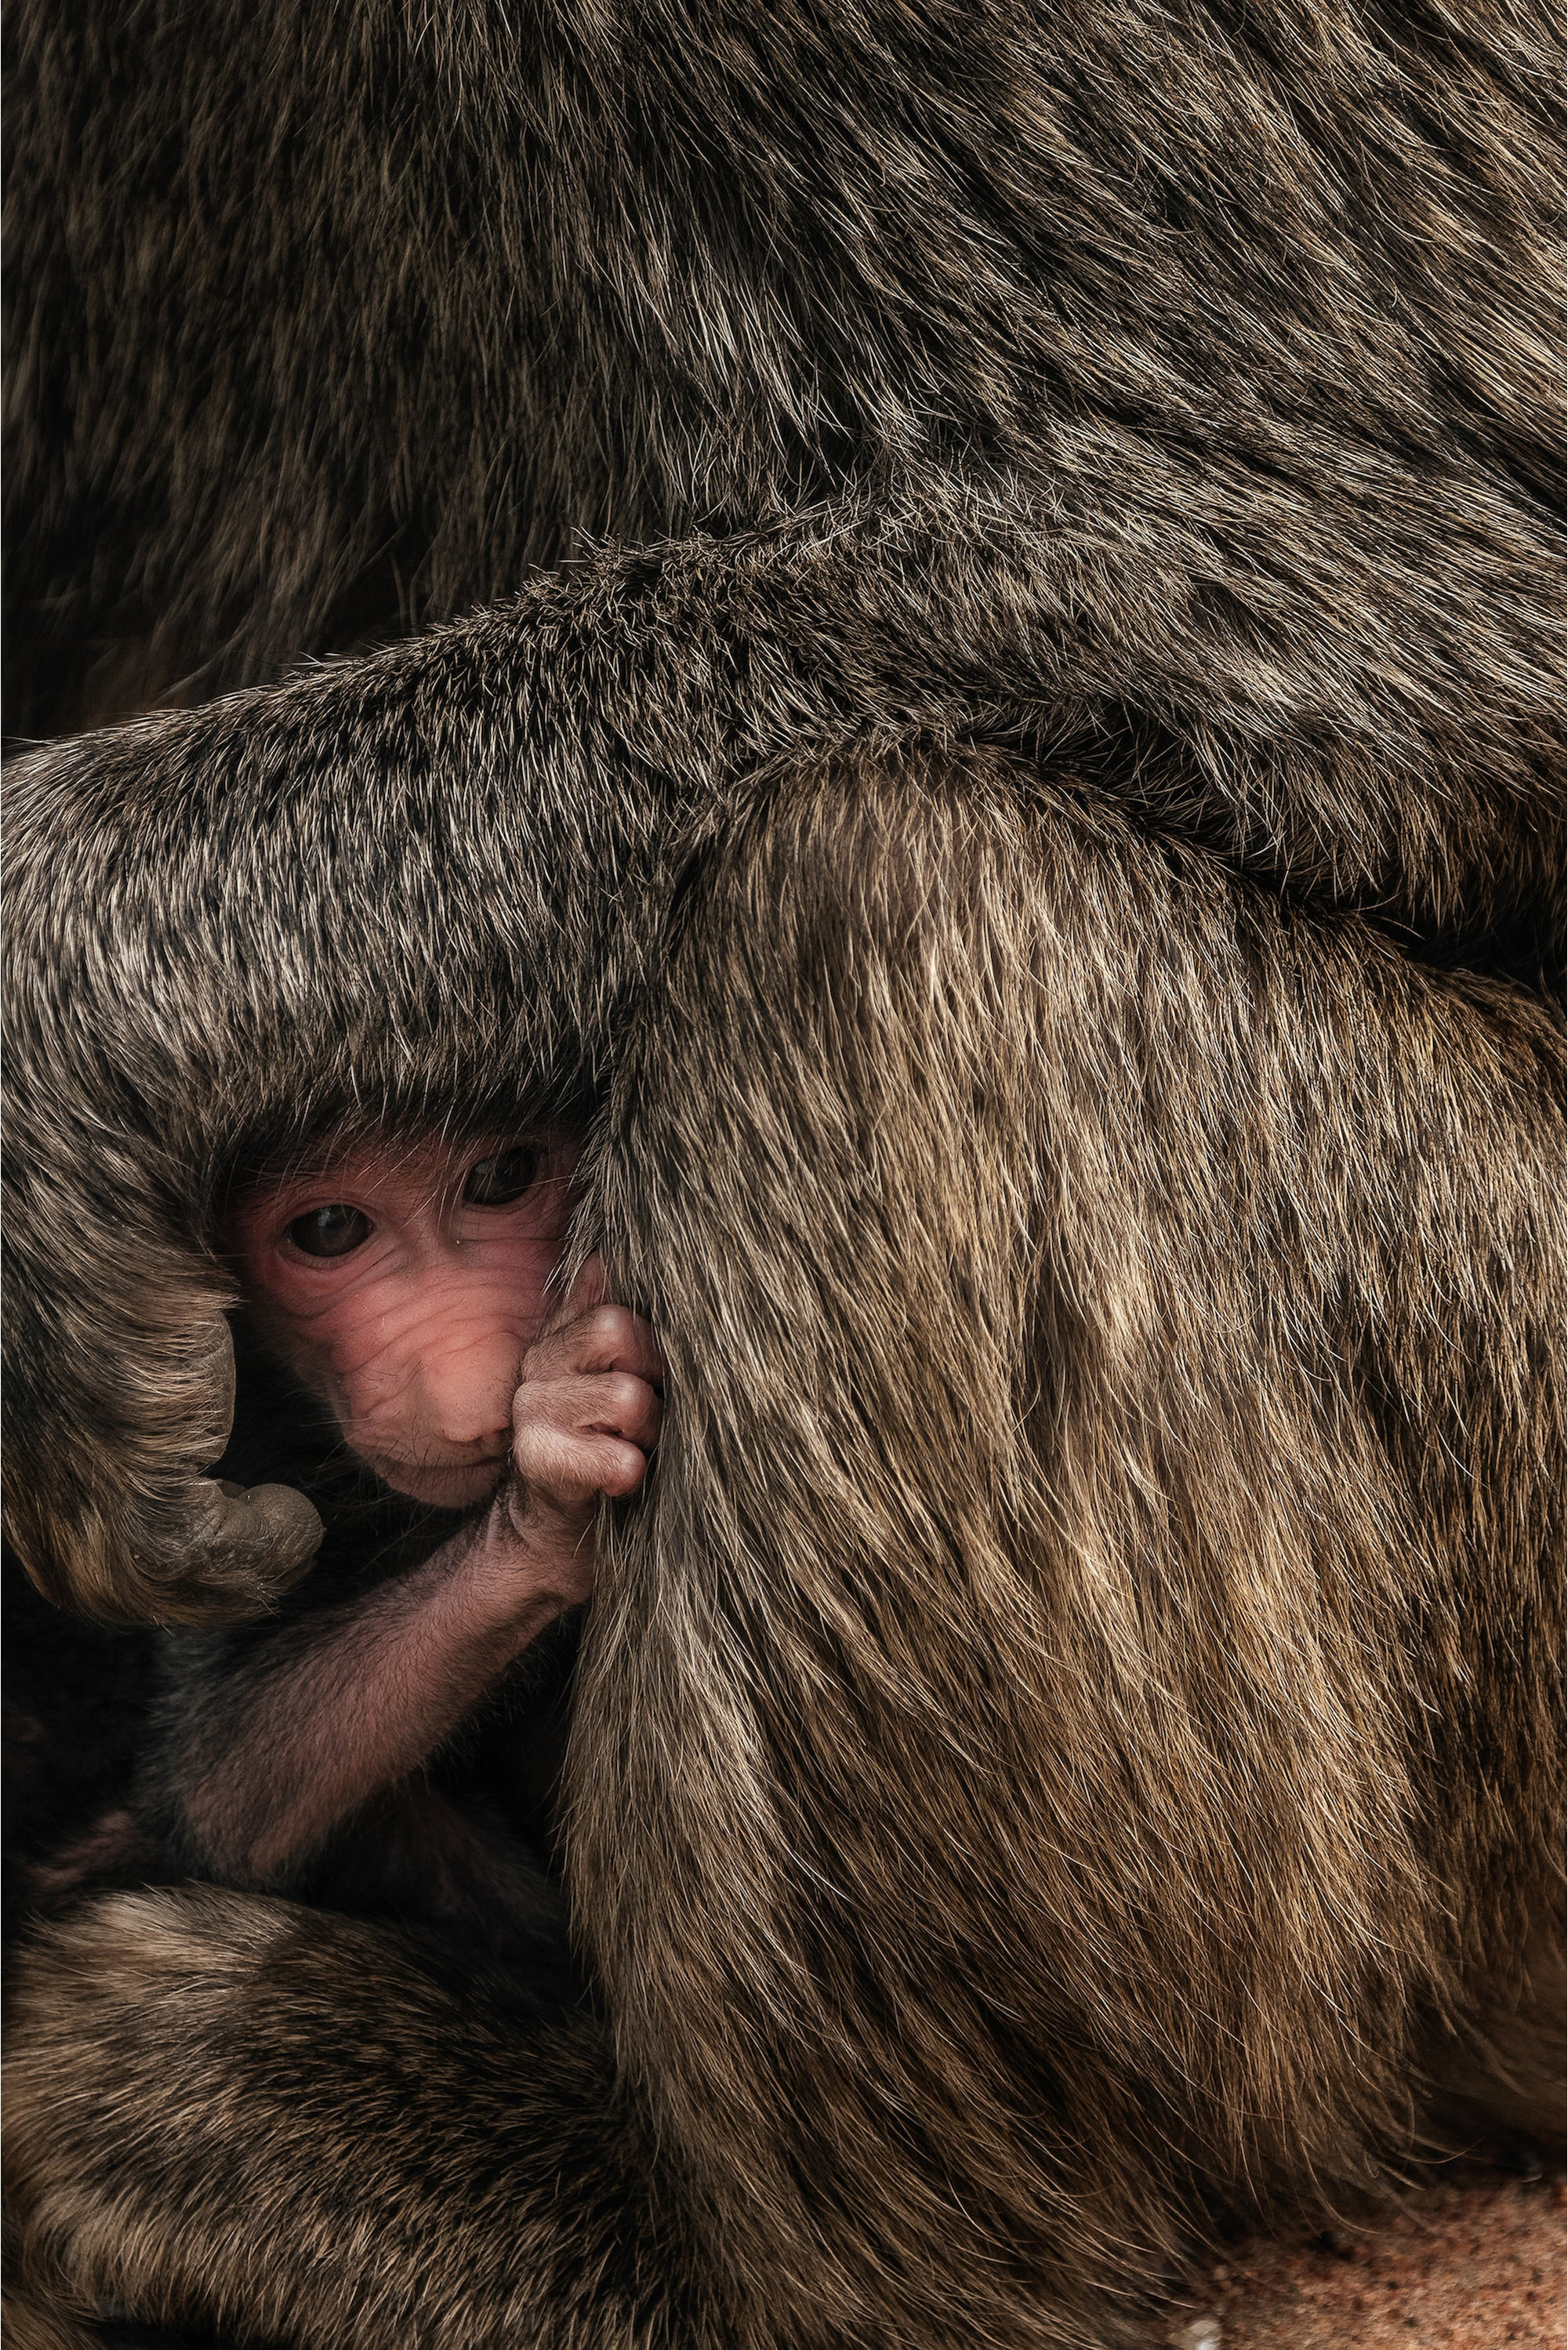 chris schmid sony alpha 7RIII newborn baby hides next to mother tanzania